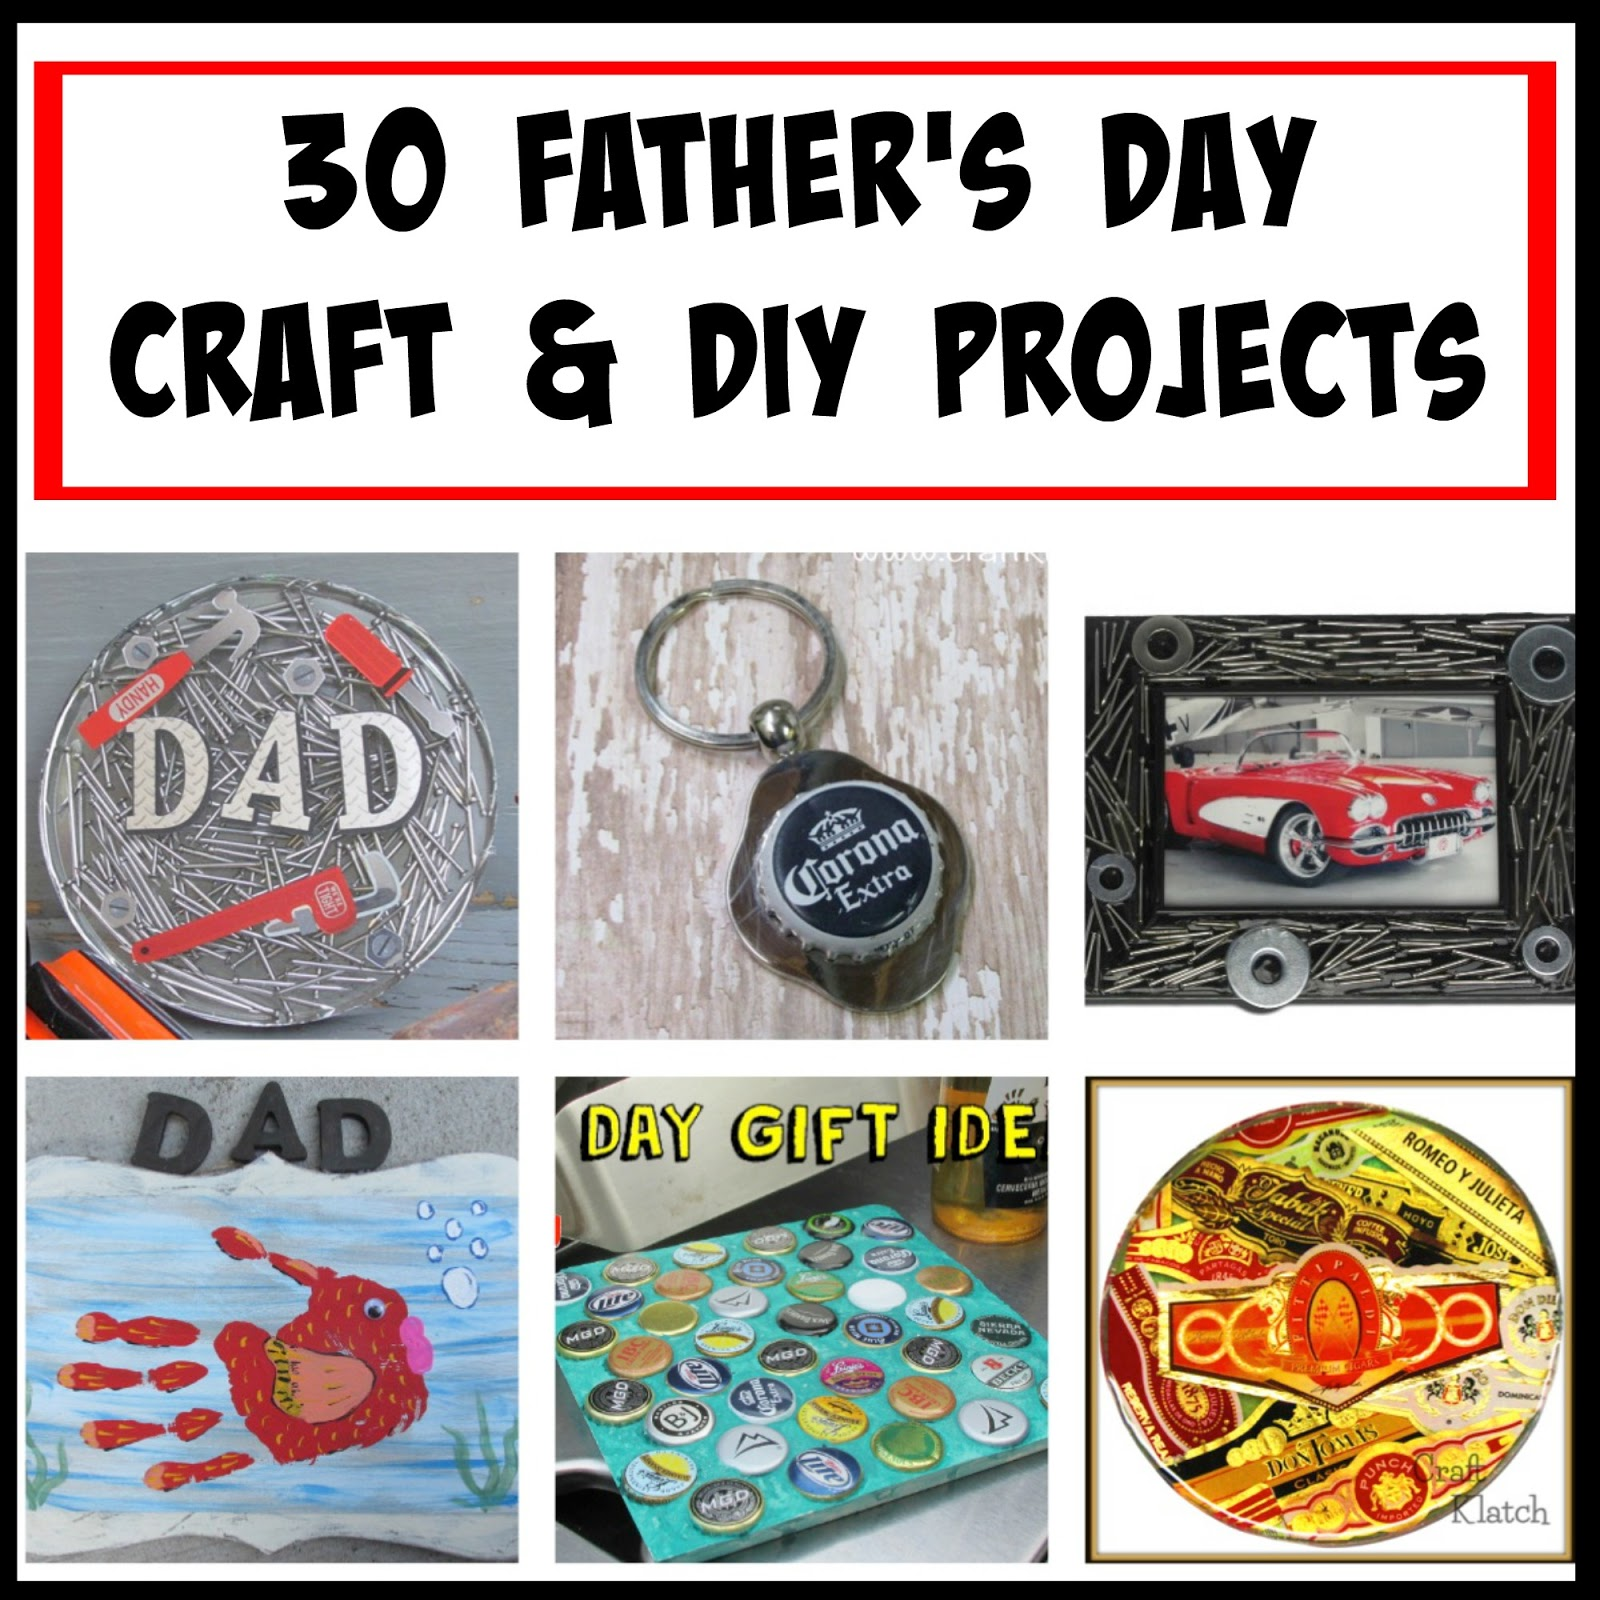 Craft klatch 30 father 39 s day crafts and diy projects for Diy gift projects